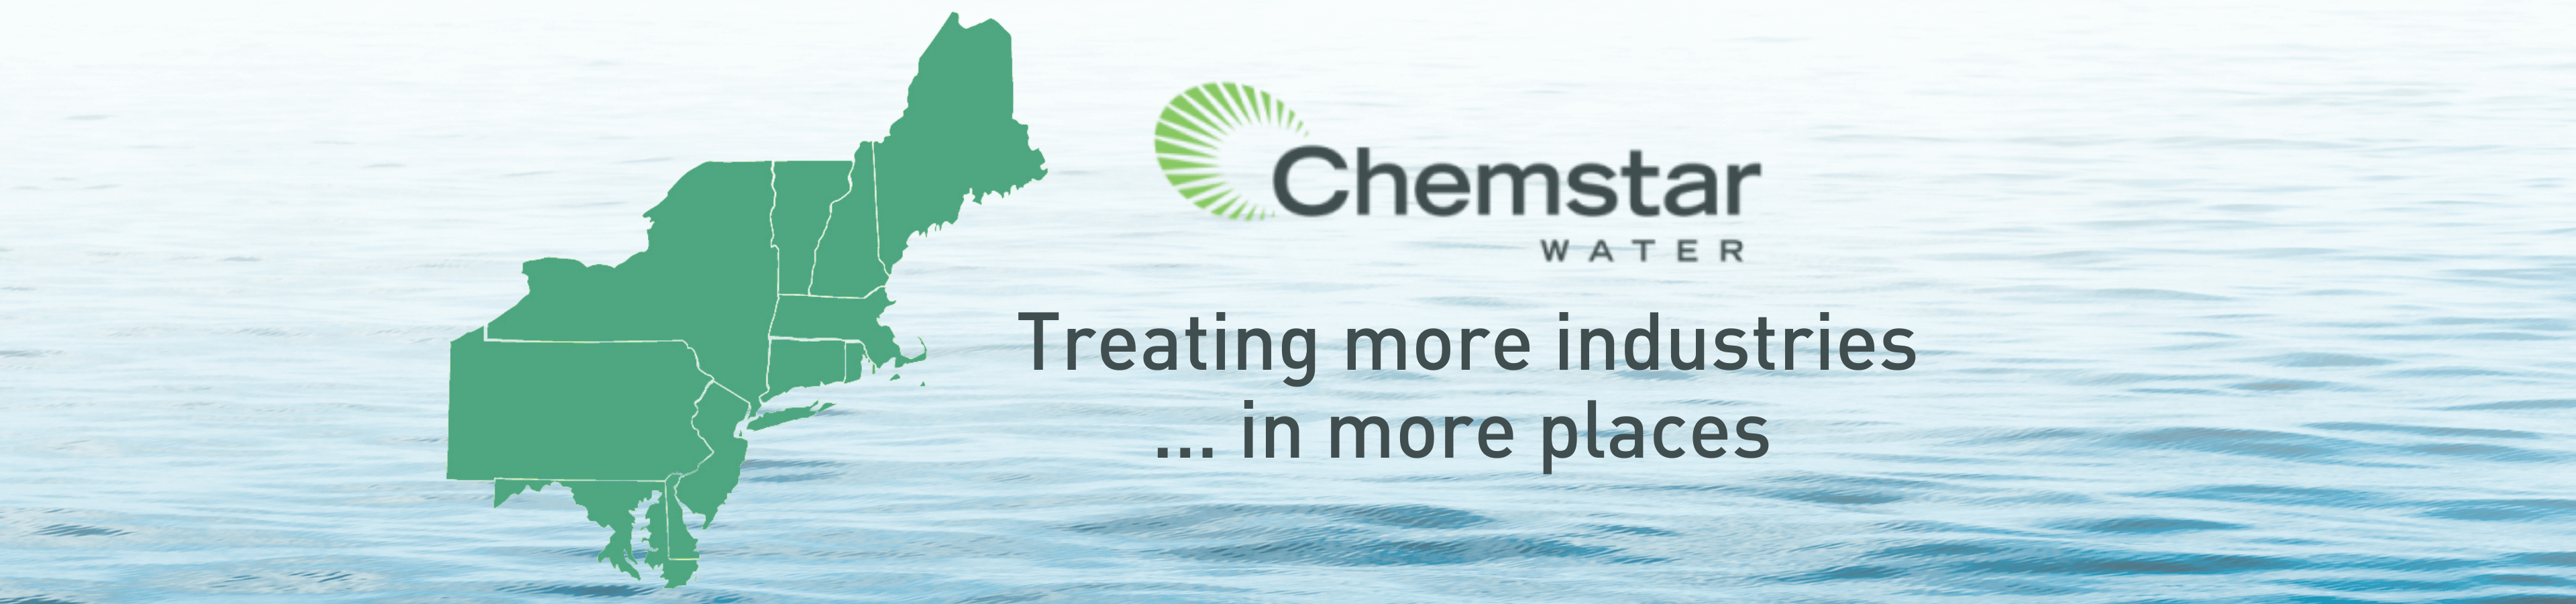 Chemstar WATER treating more industries in more places